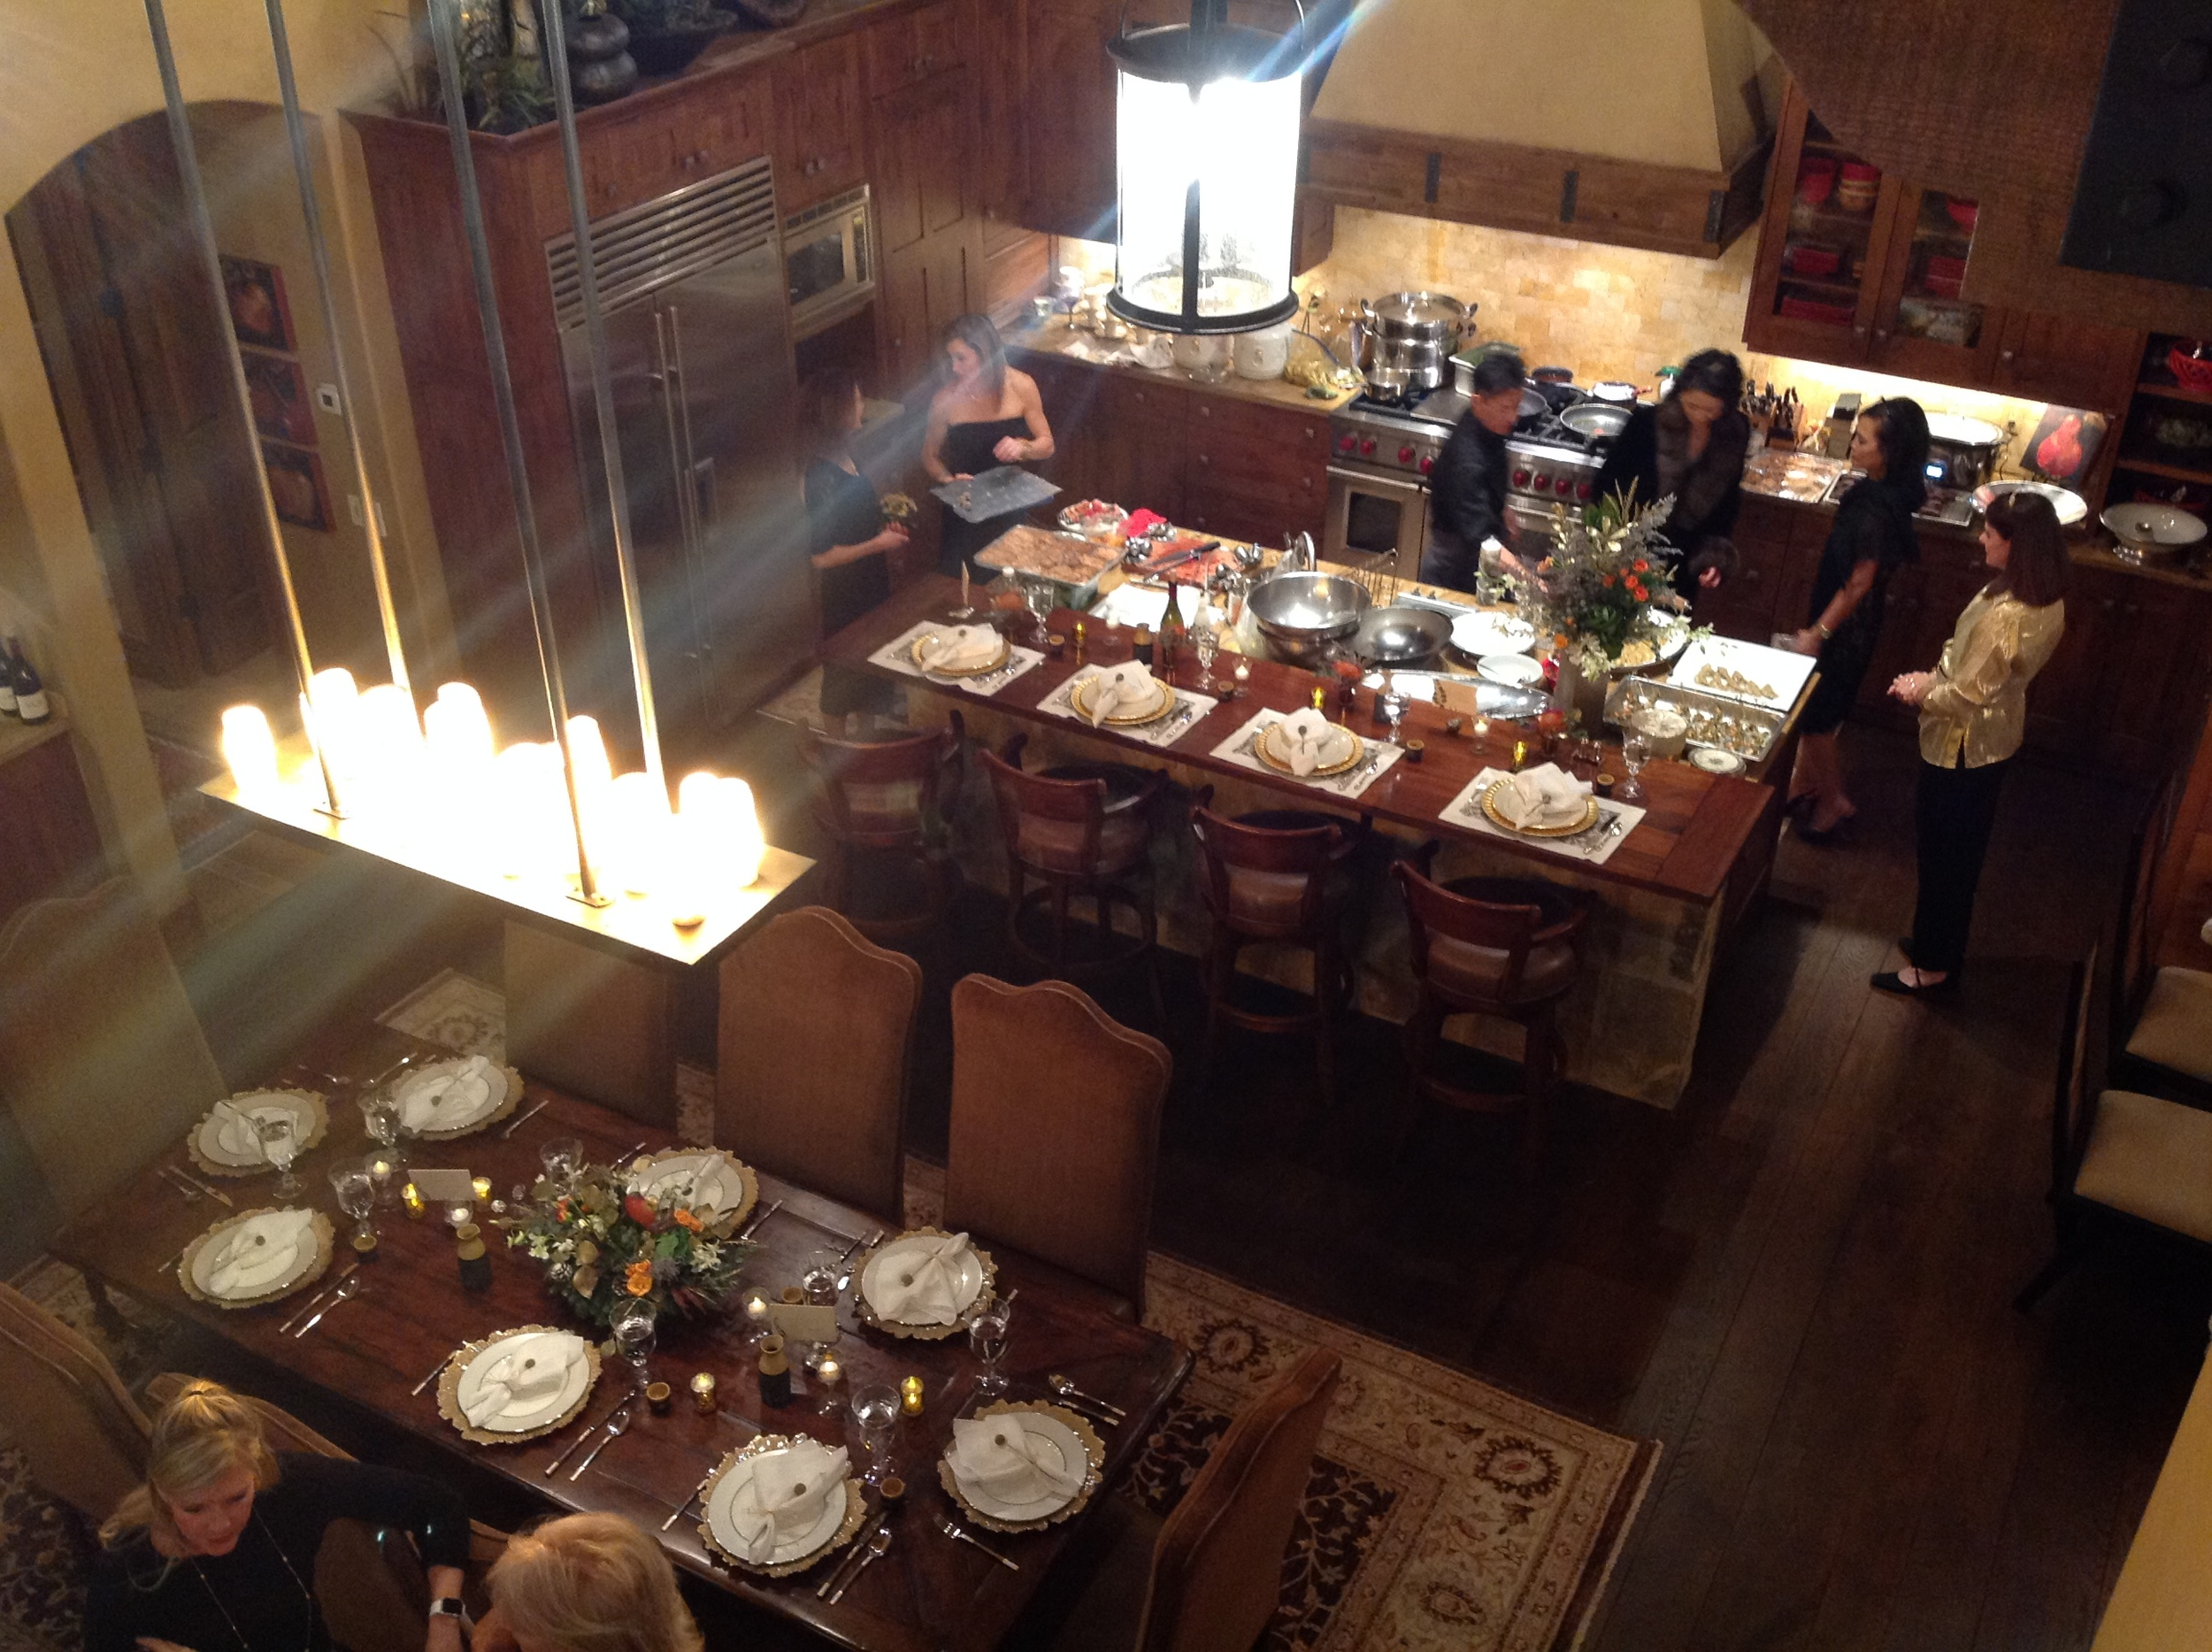 An overview of the dining room and kitchen table settings.